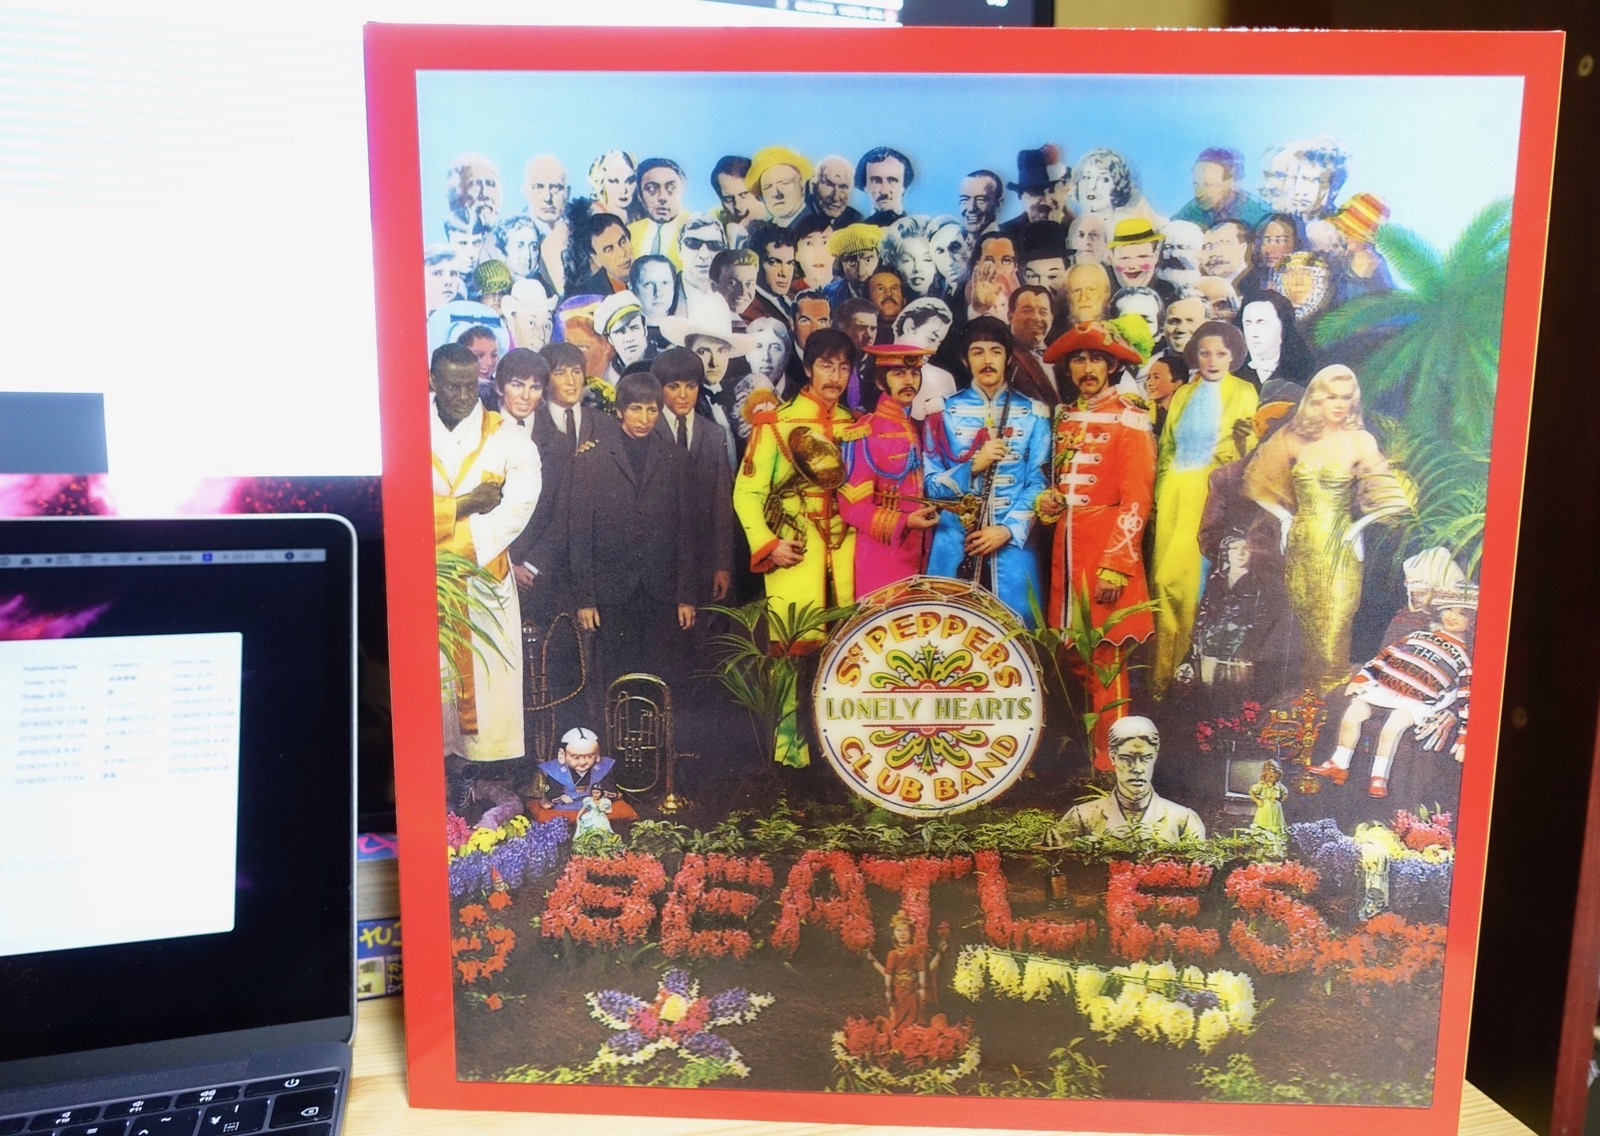 Sgt. Pepper's Lonely Hearts Club Bandのボックス Beatles